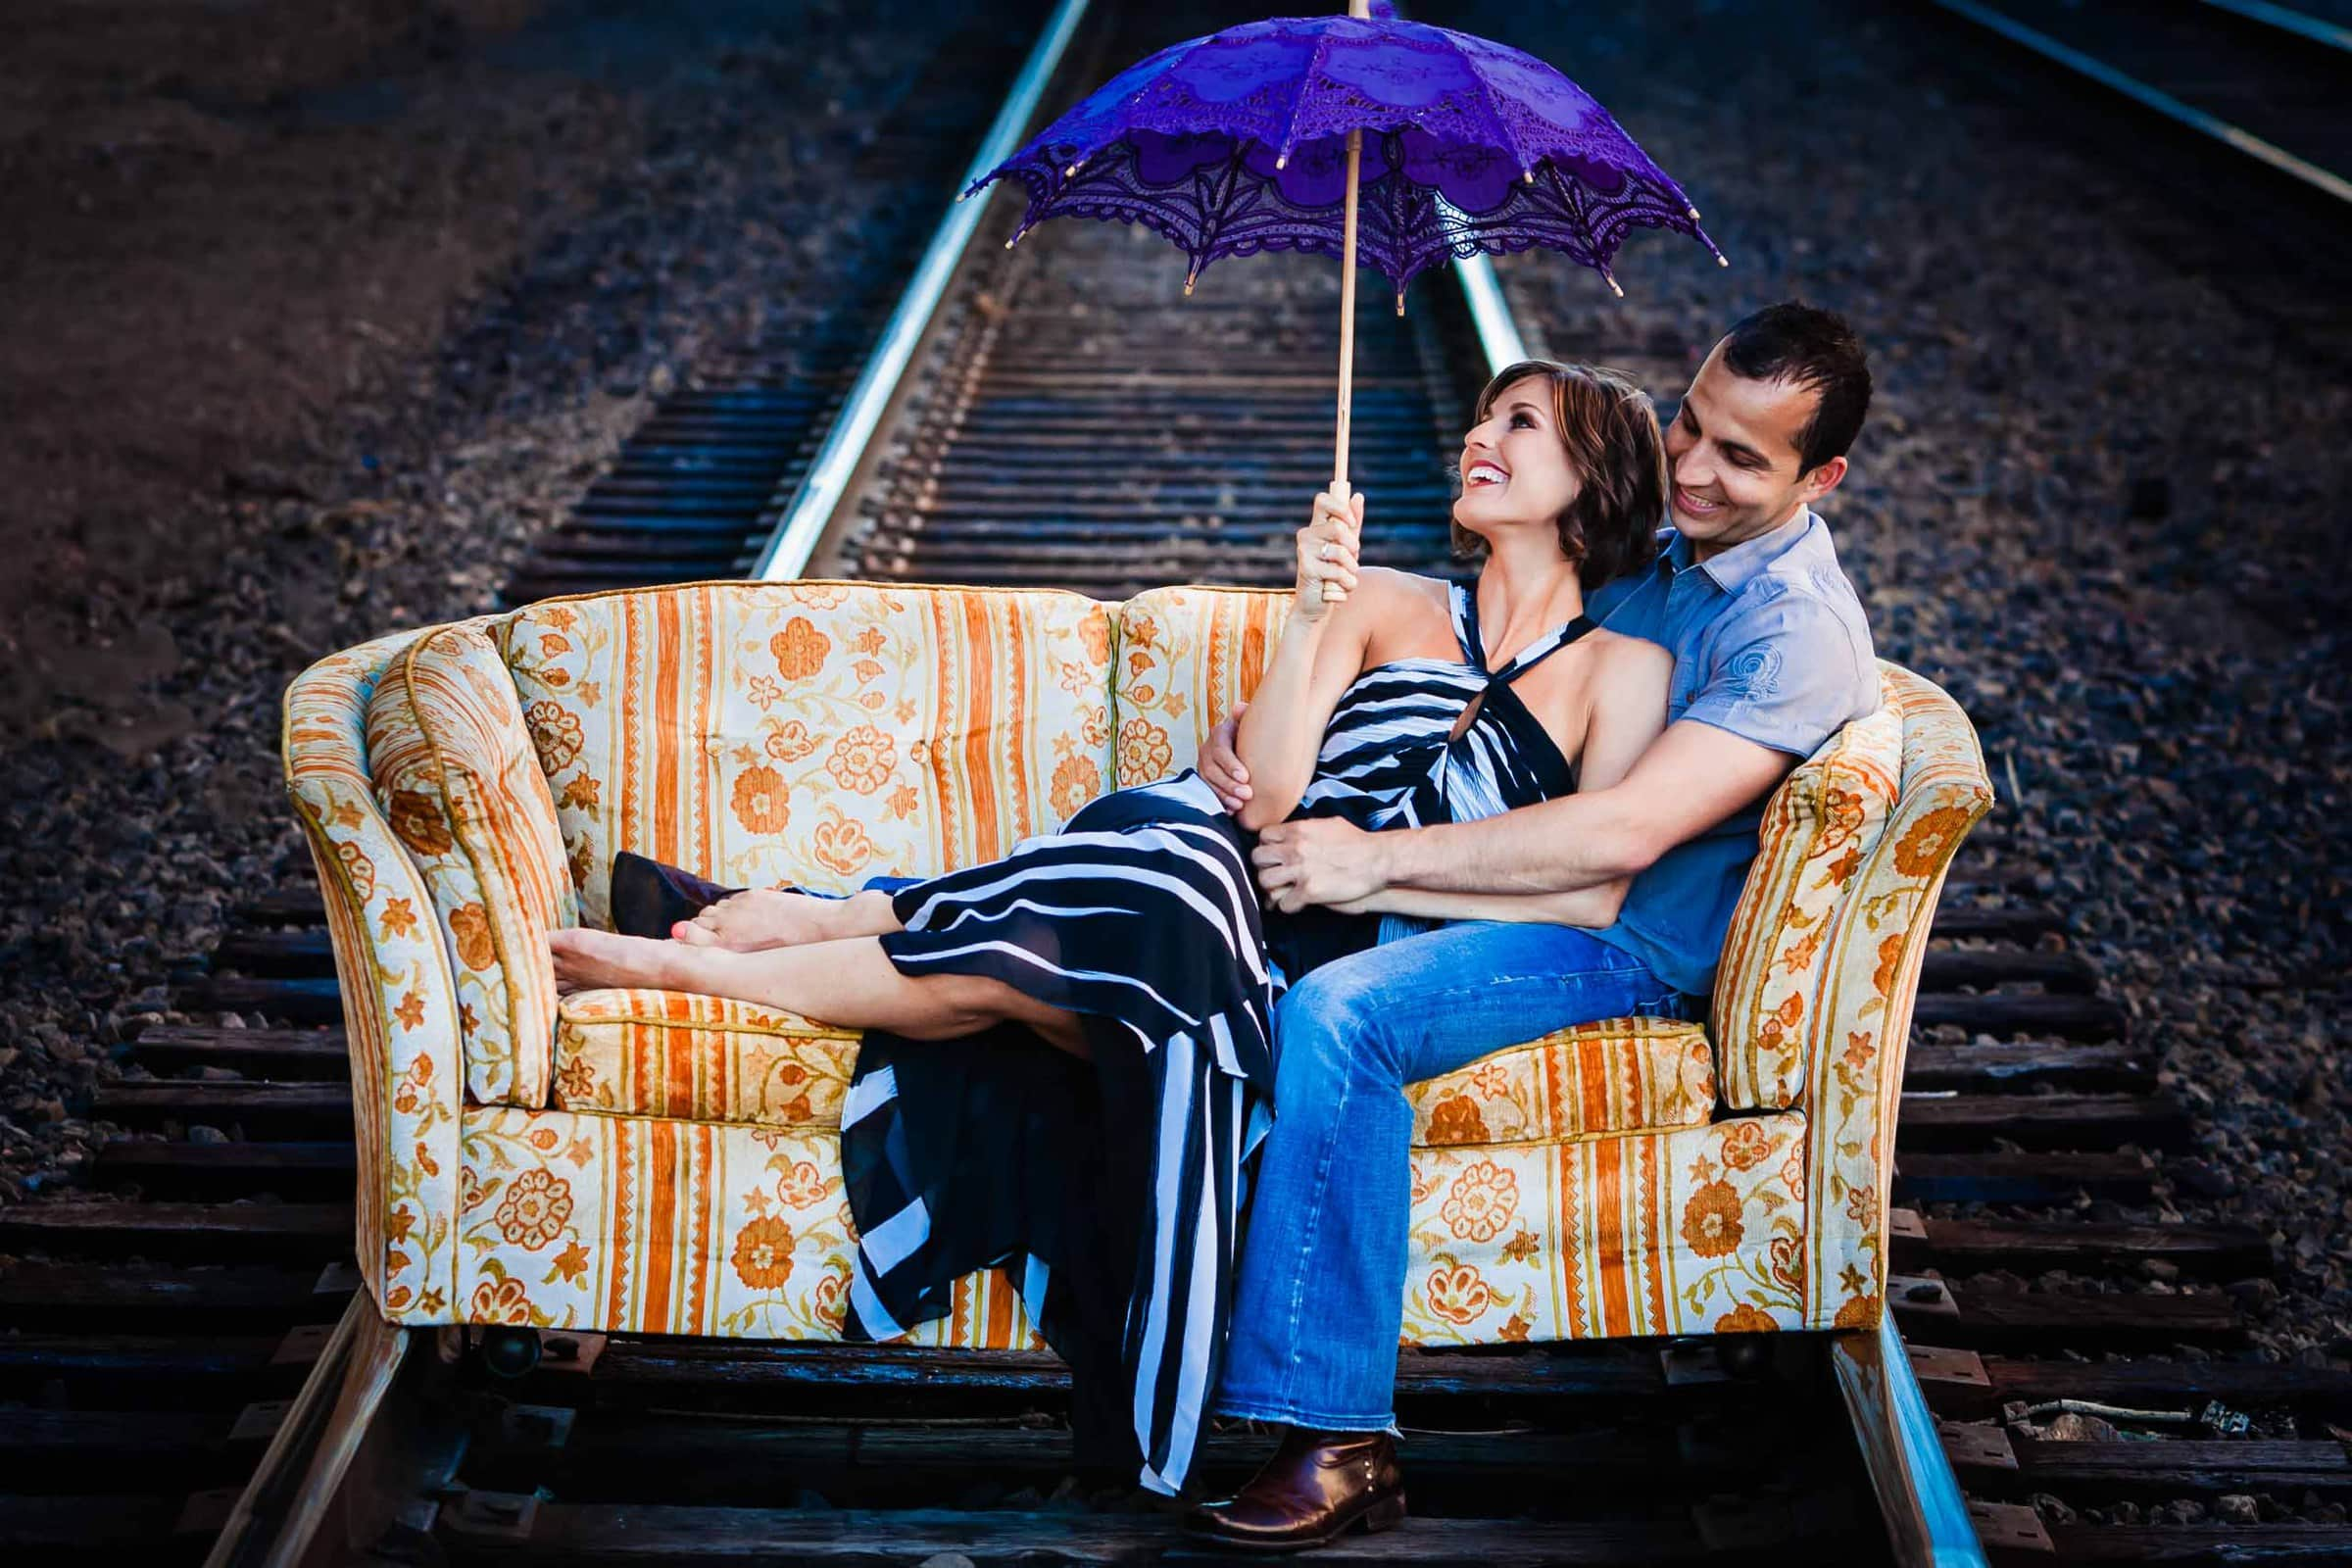 Gorgeous Portland engagement photo of a couple on railroad tracks on a couch super happy and madly in love